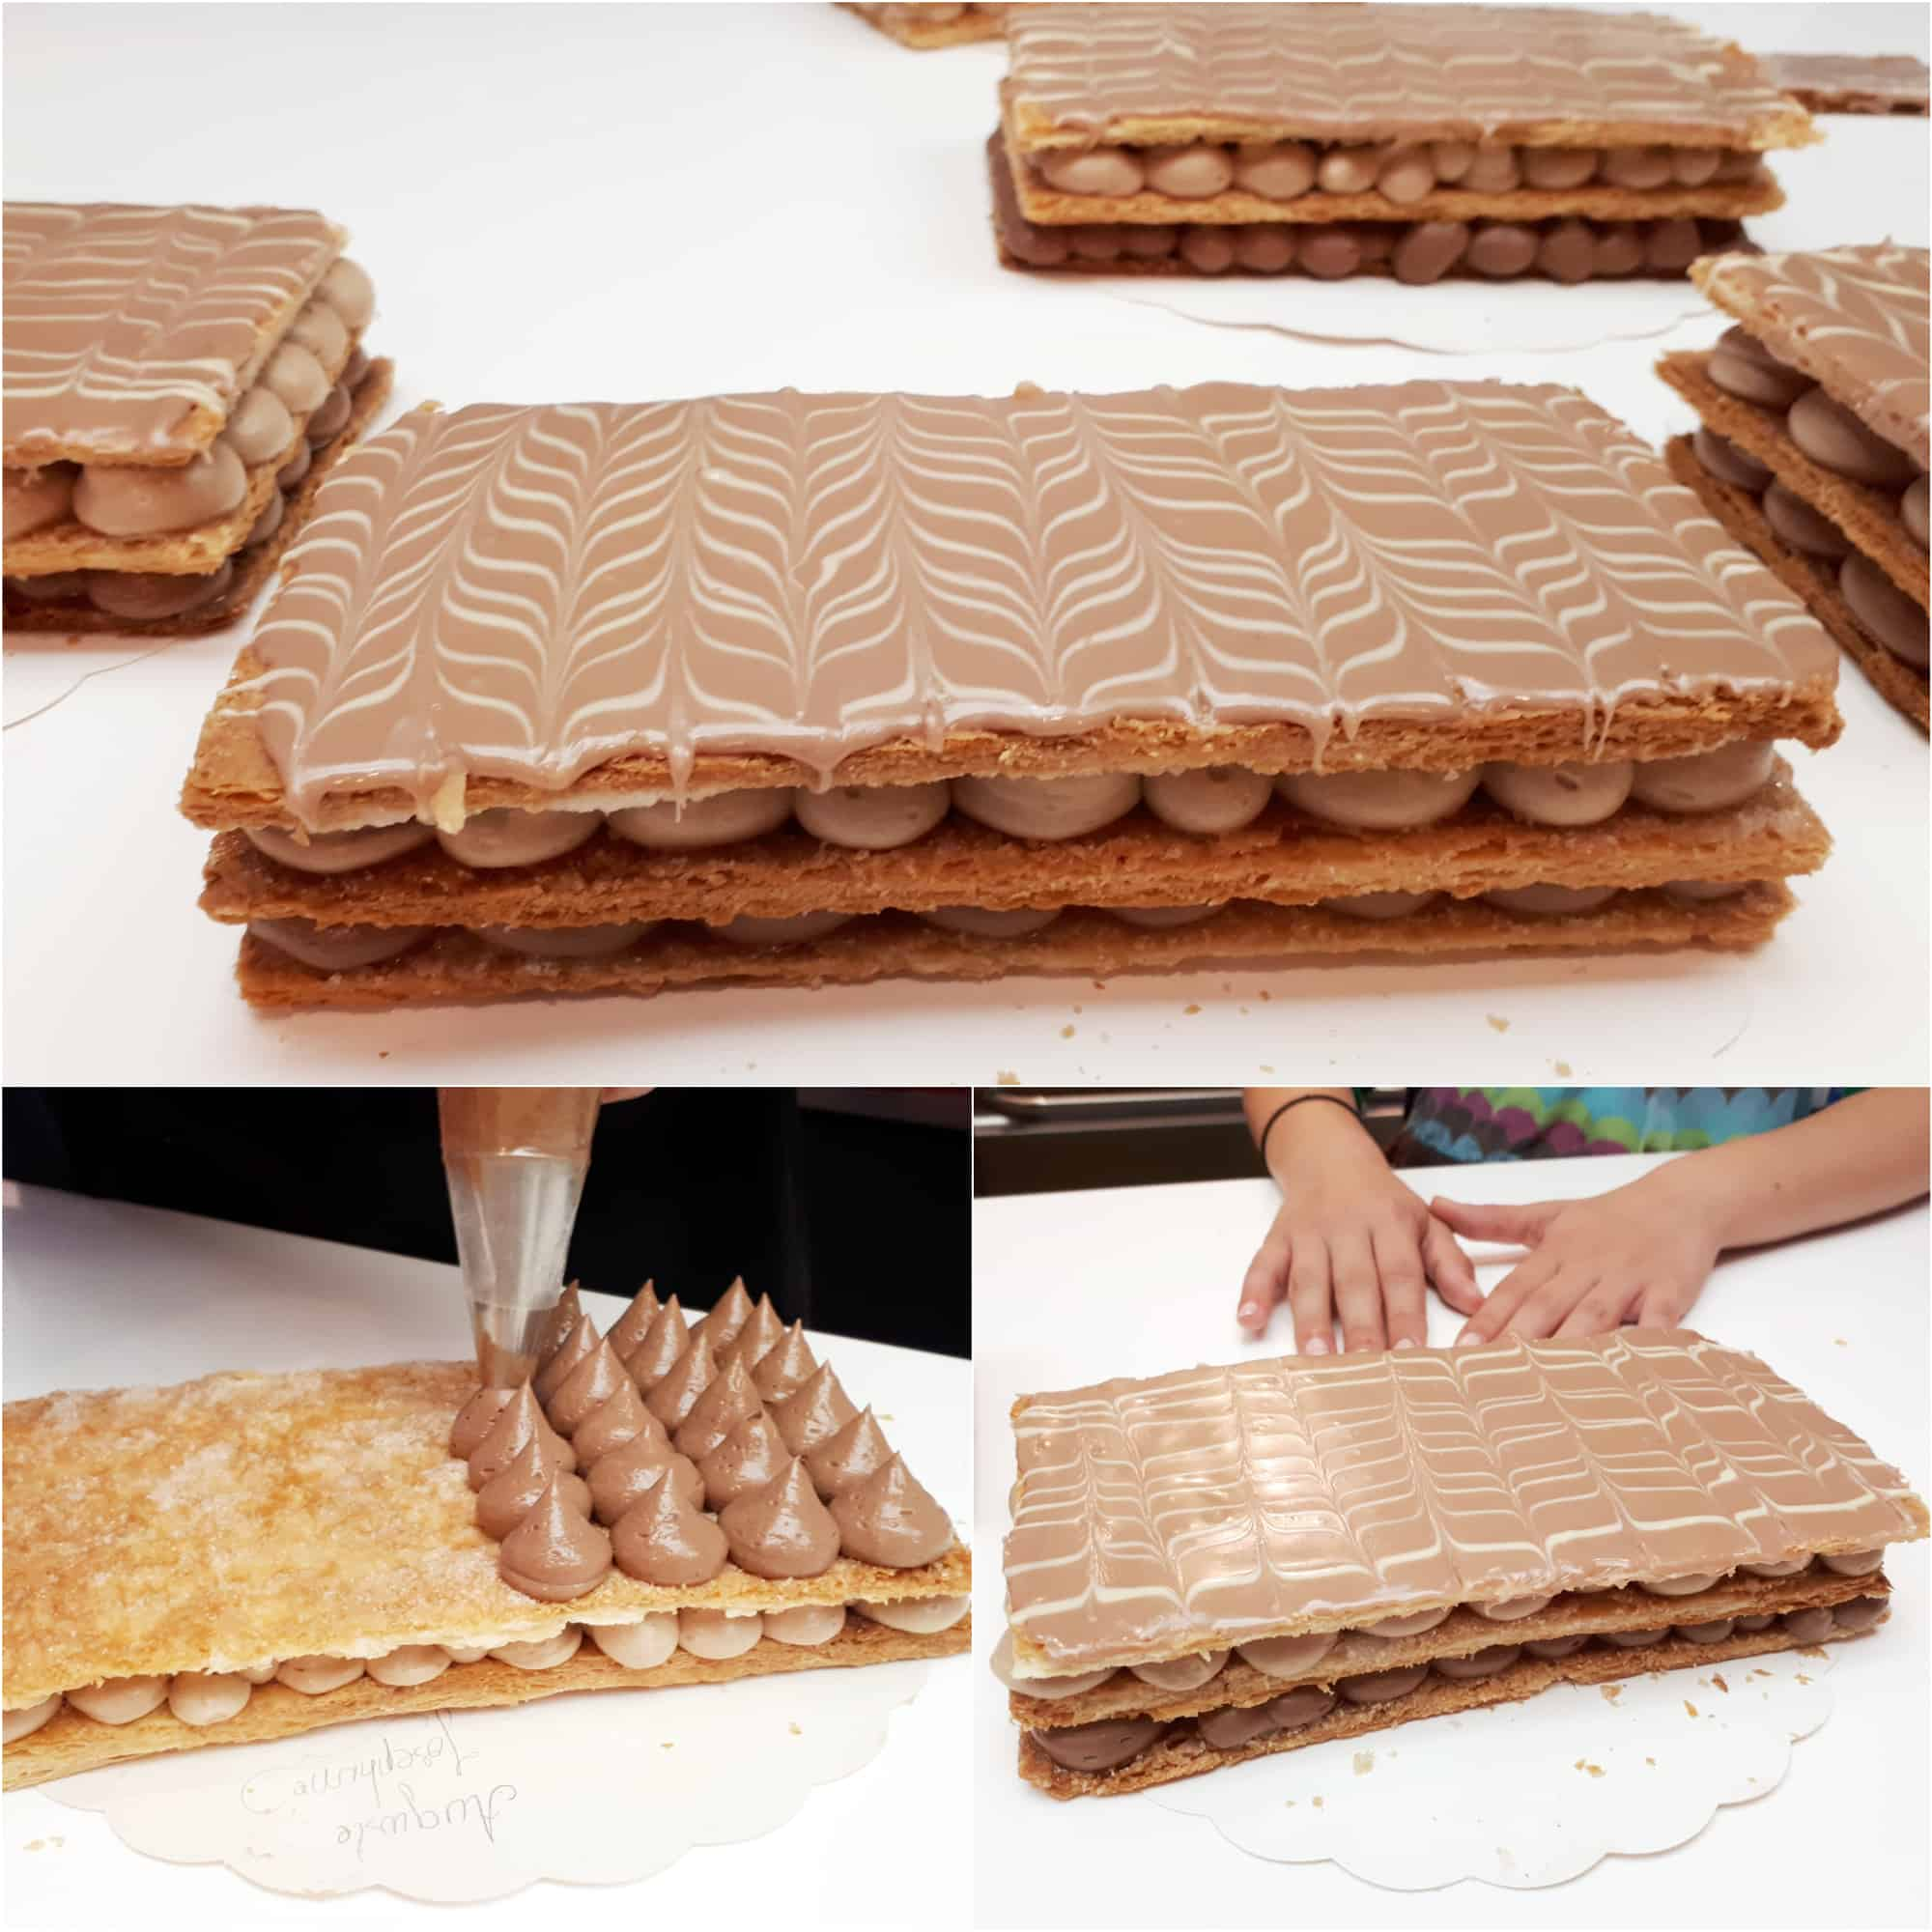 Millefeuille Cours Gourmand Pâtisserie Lyon